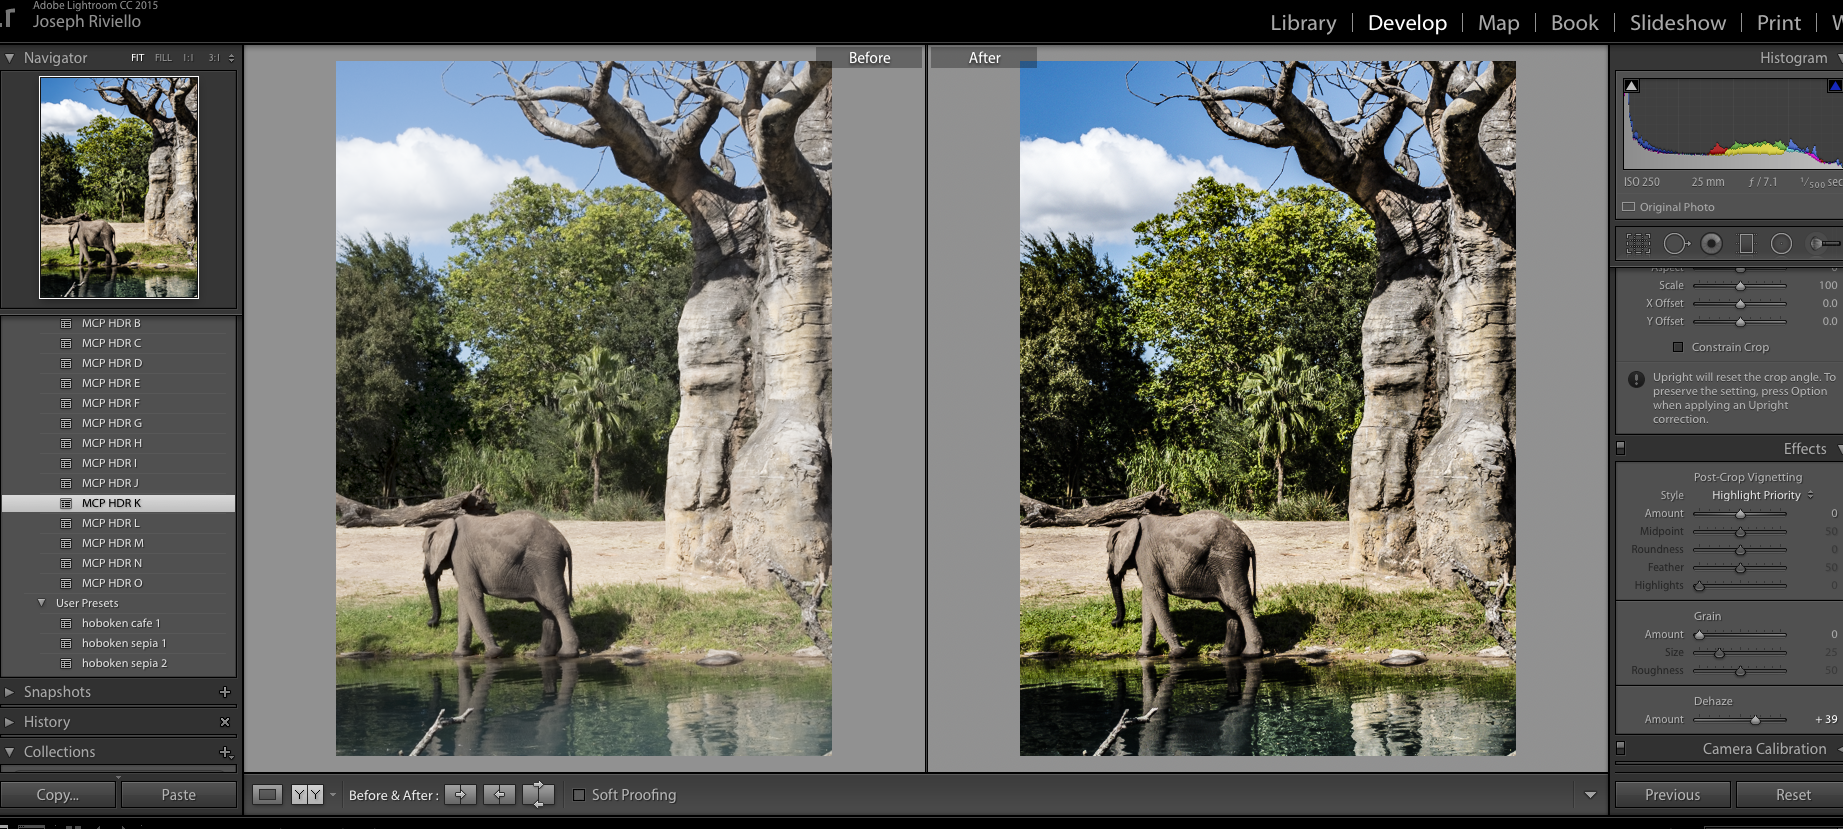 Elephant-before2 HDR in Lightroom - How to Get the HDR Look You Want Uncategorized